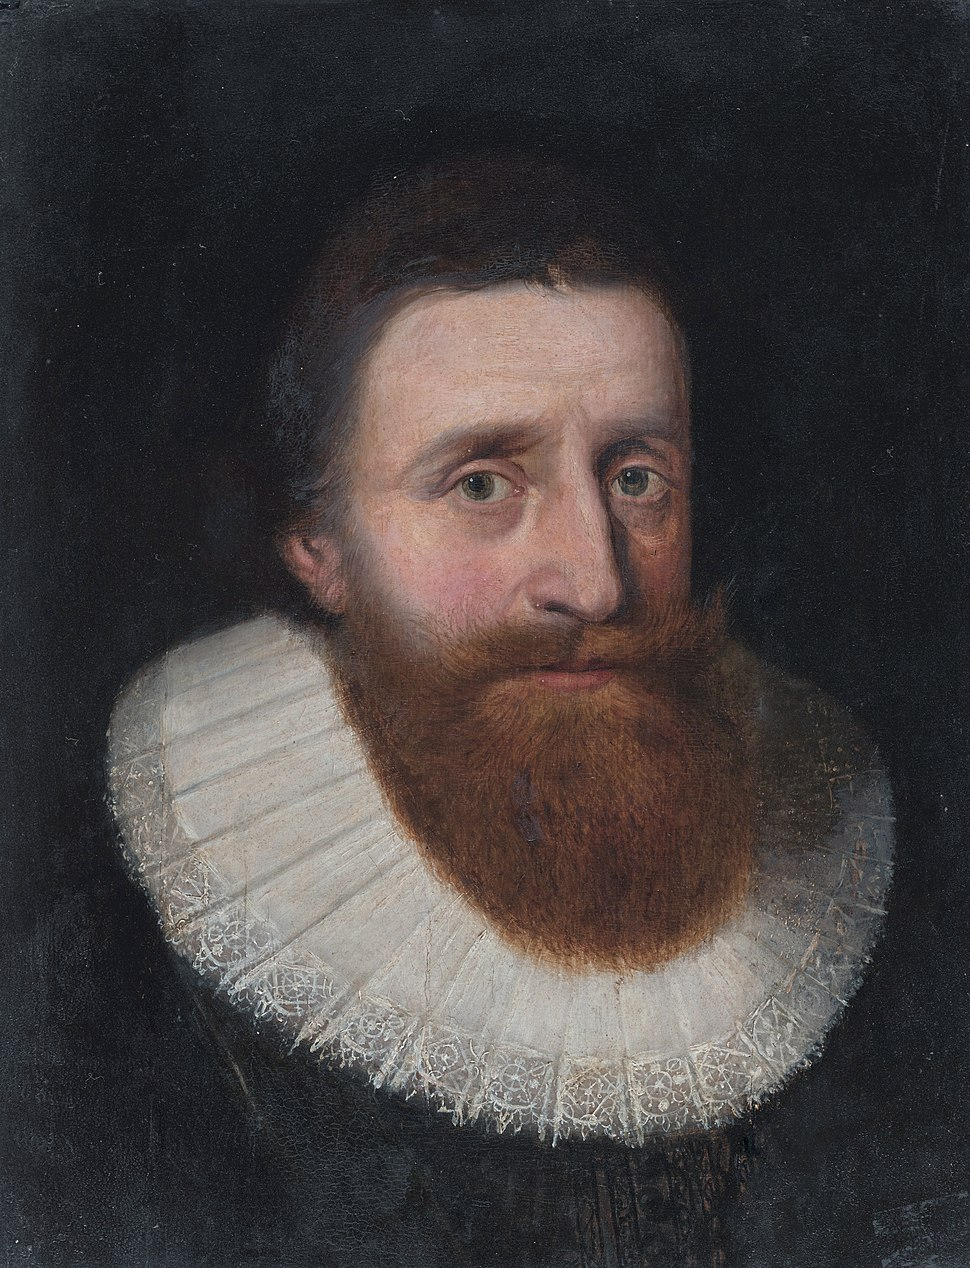 Ludovic Stewart, 2nd Duke of Lennox, by English School of the 17th century